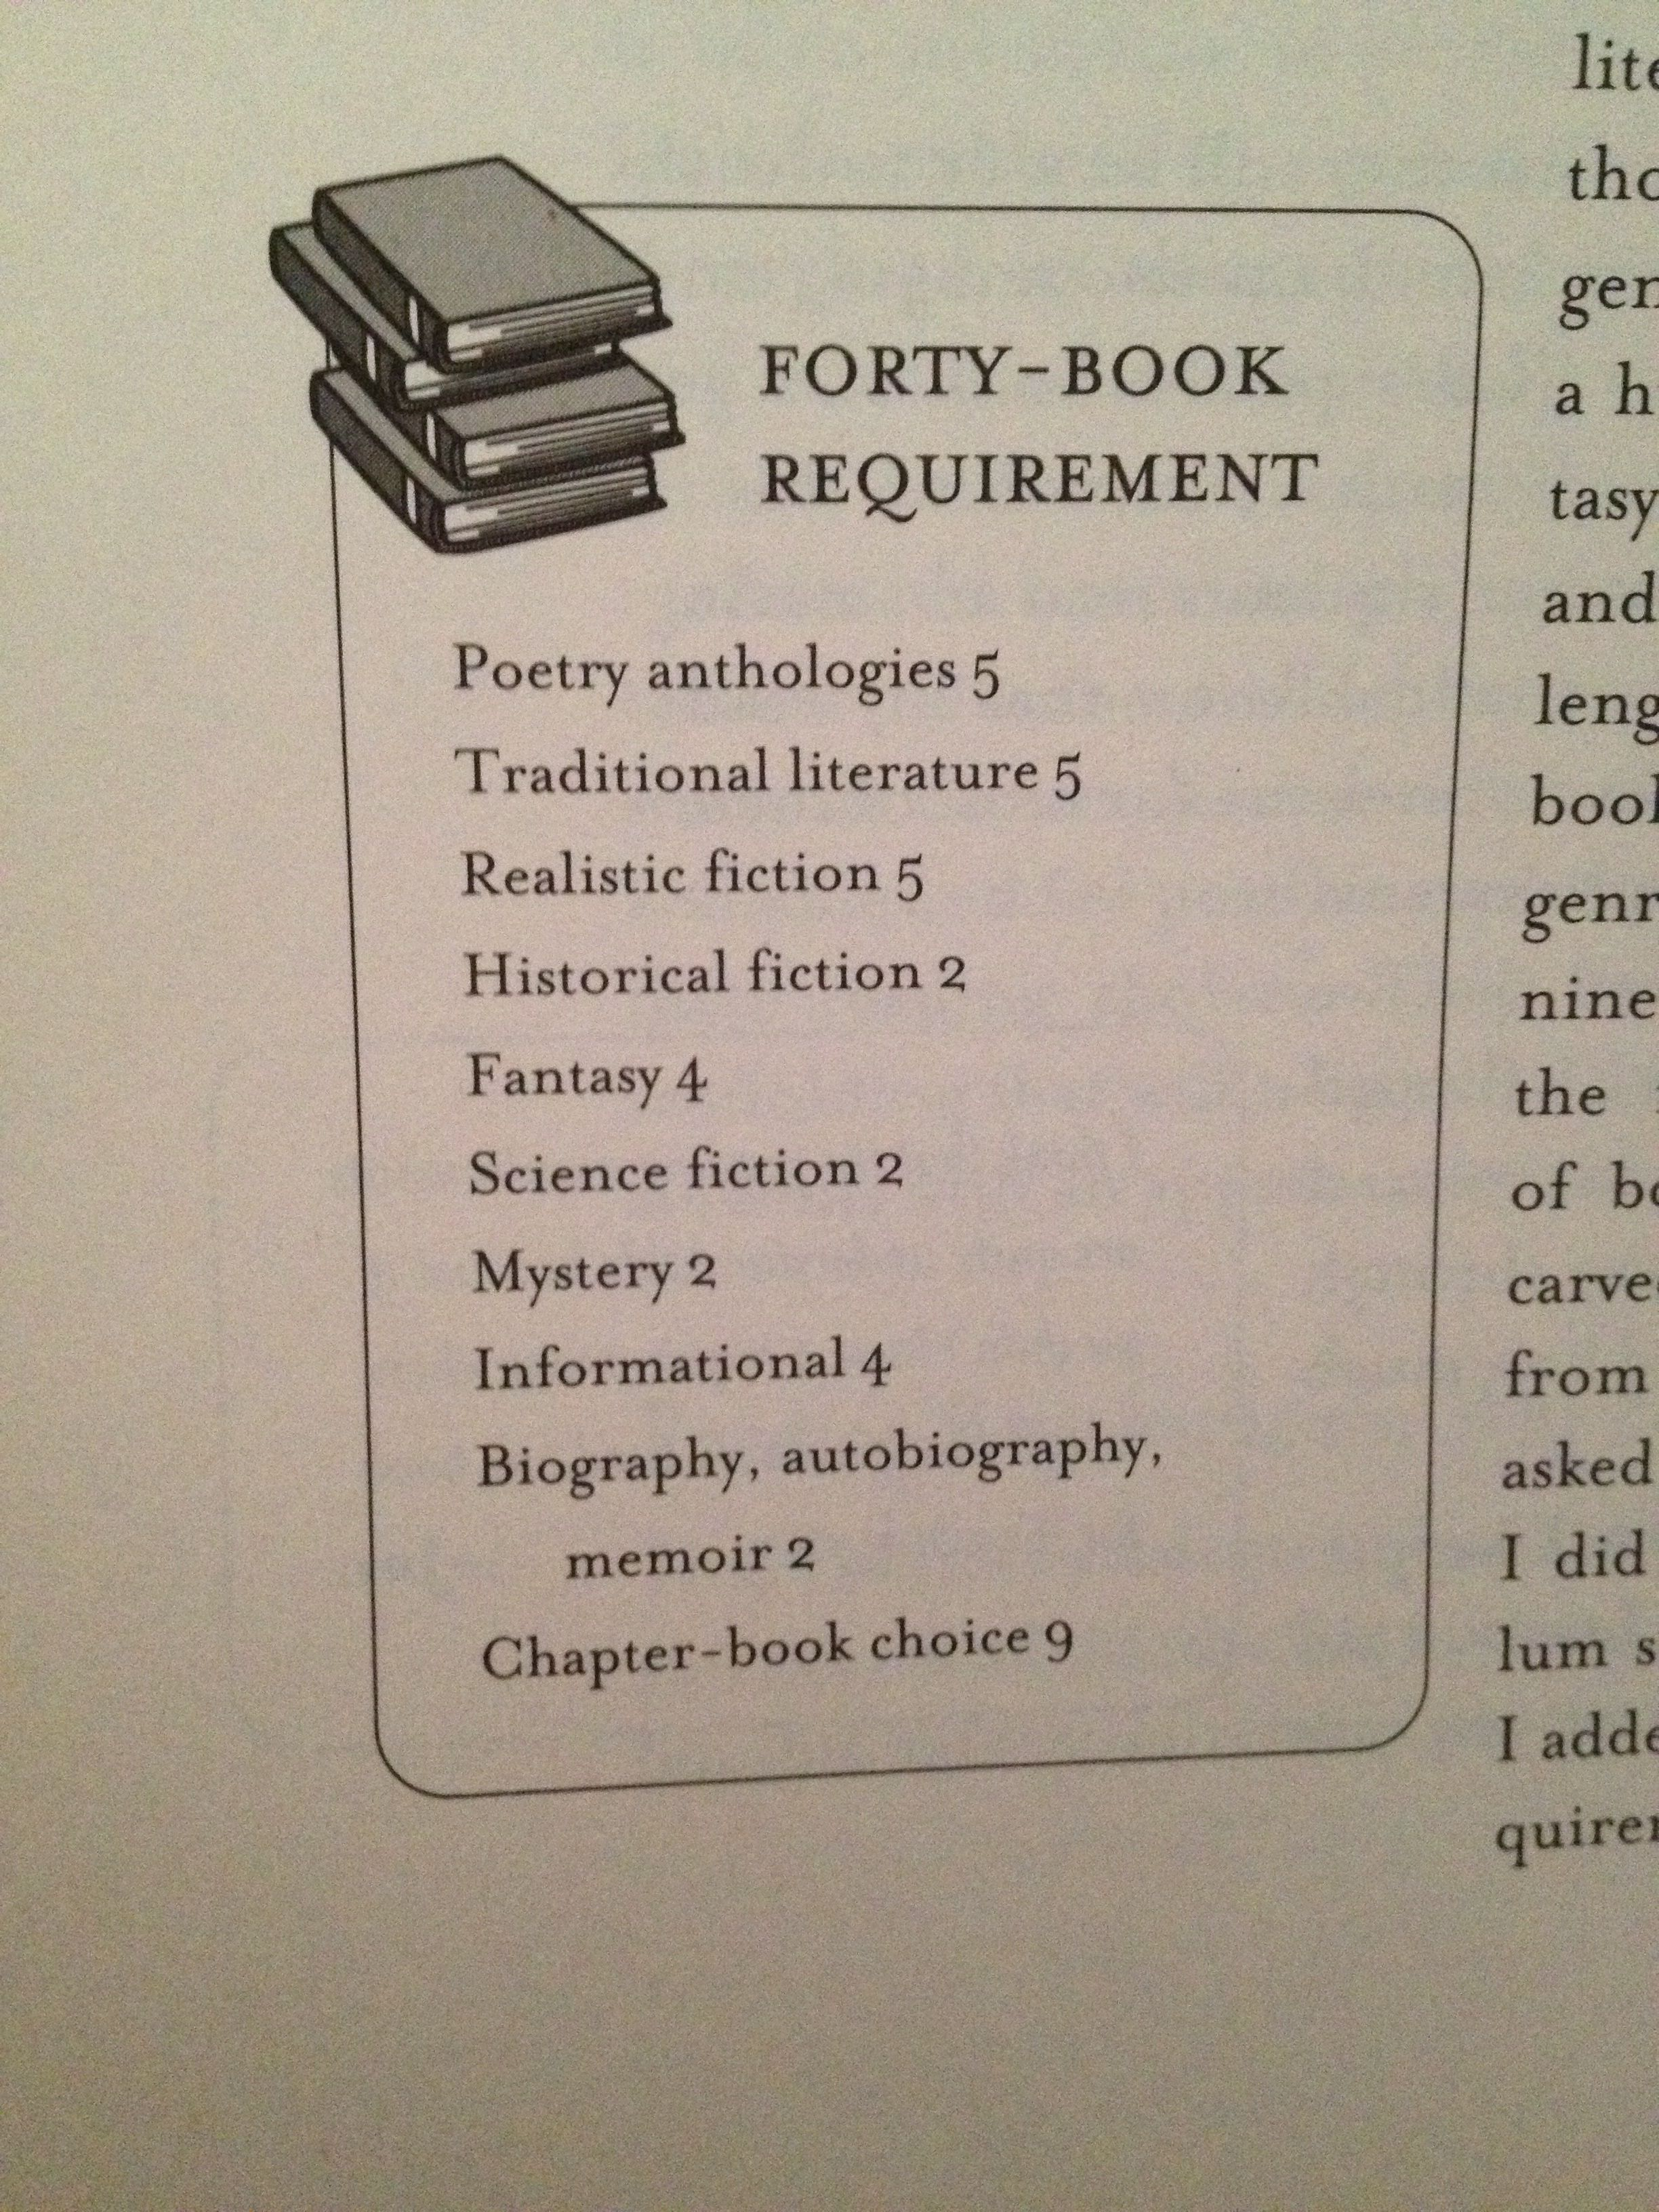 Forty Book Requirement List From The Book Whisperer By